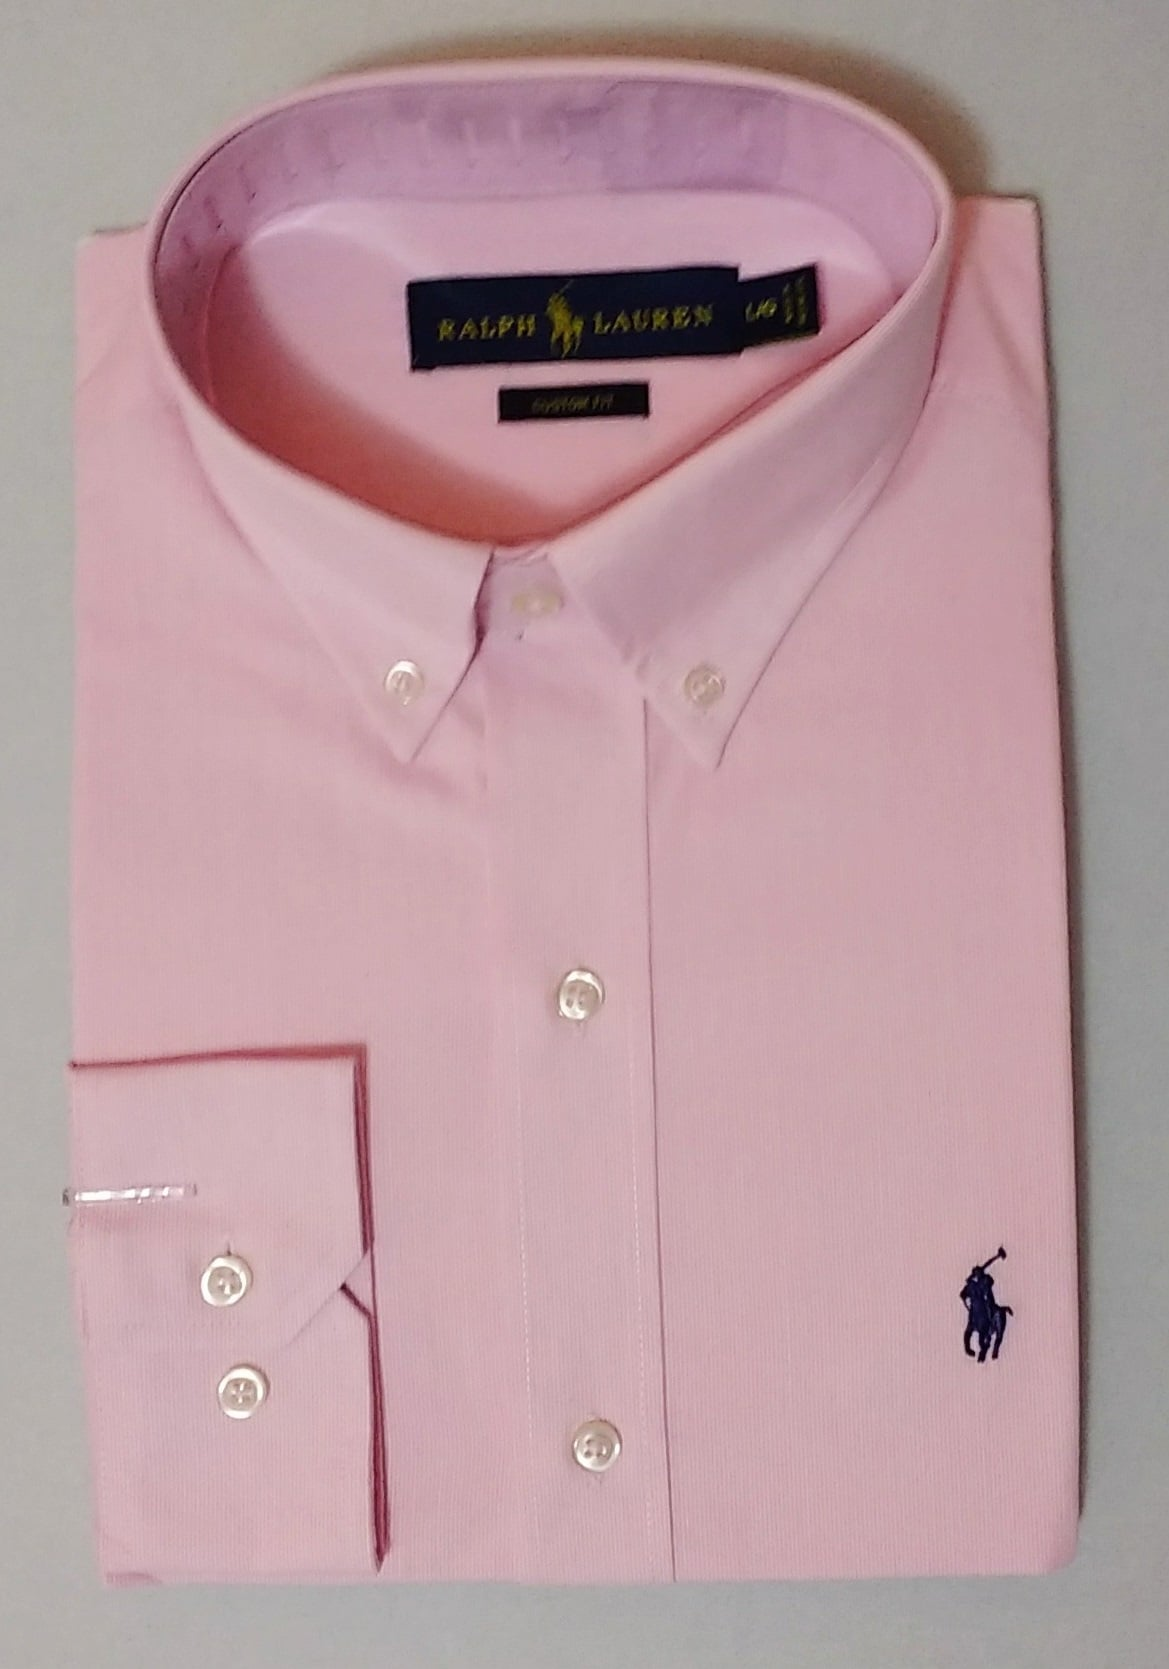 905ddd9b7 Camisa Social Manga Longa Ralph Lauren Lisa – Direct Peru   Co.